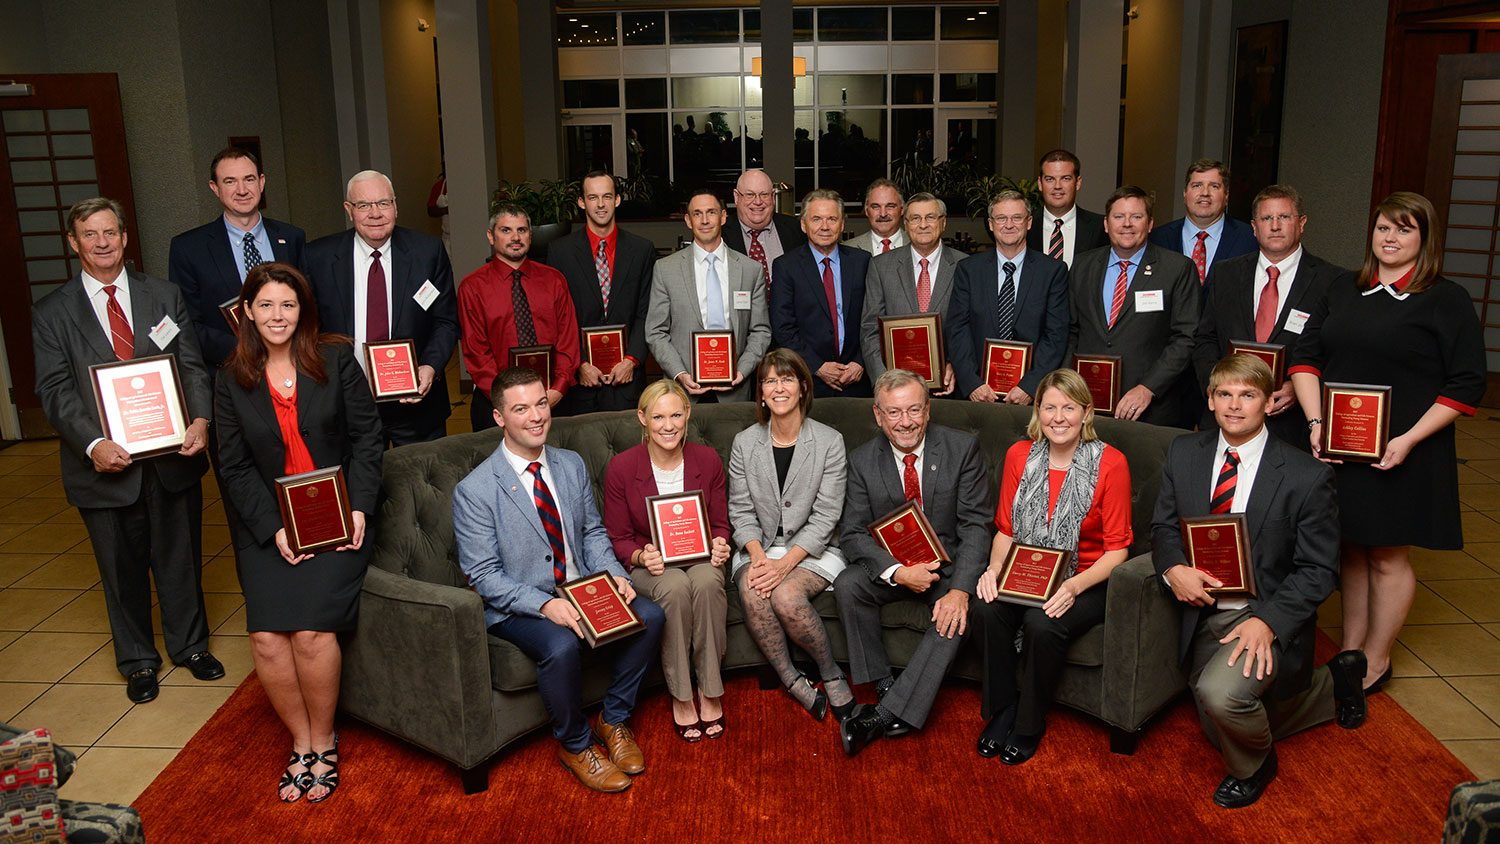 CALS alumni award winners gathered for a group shot at the ceremony